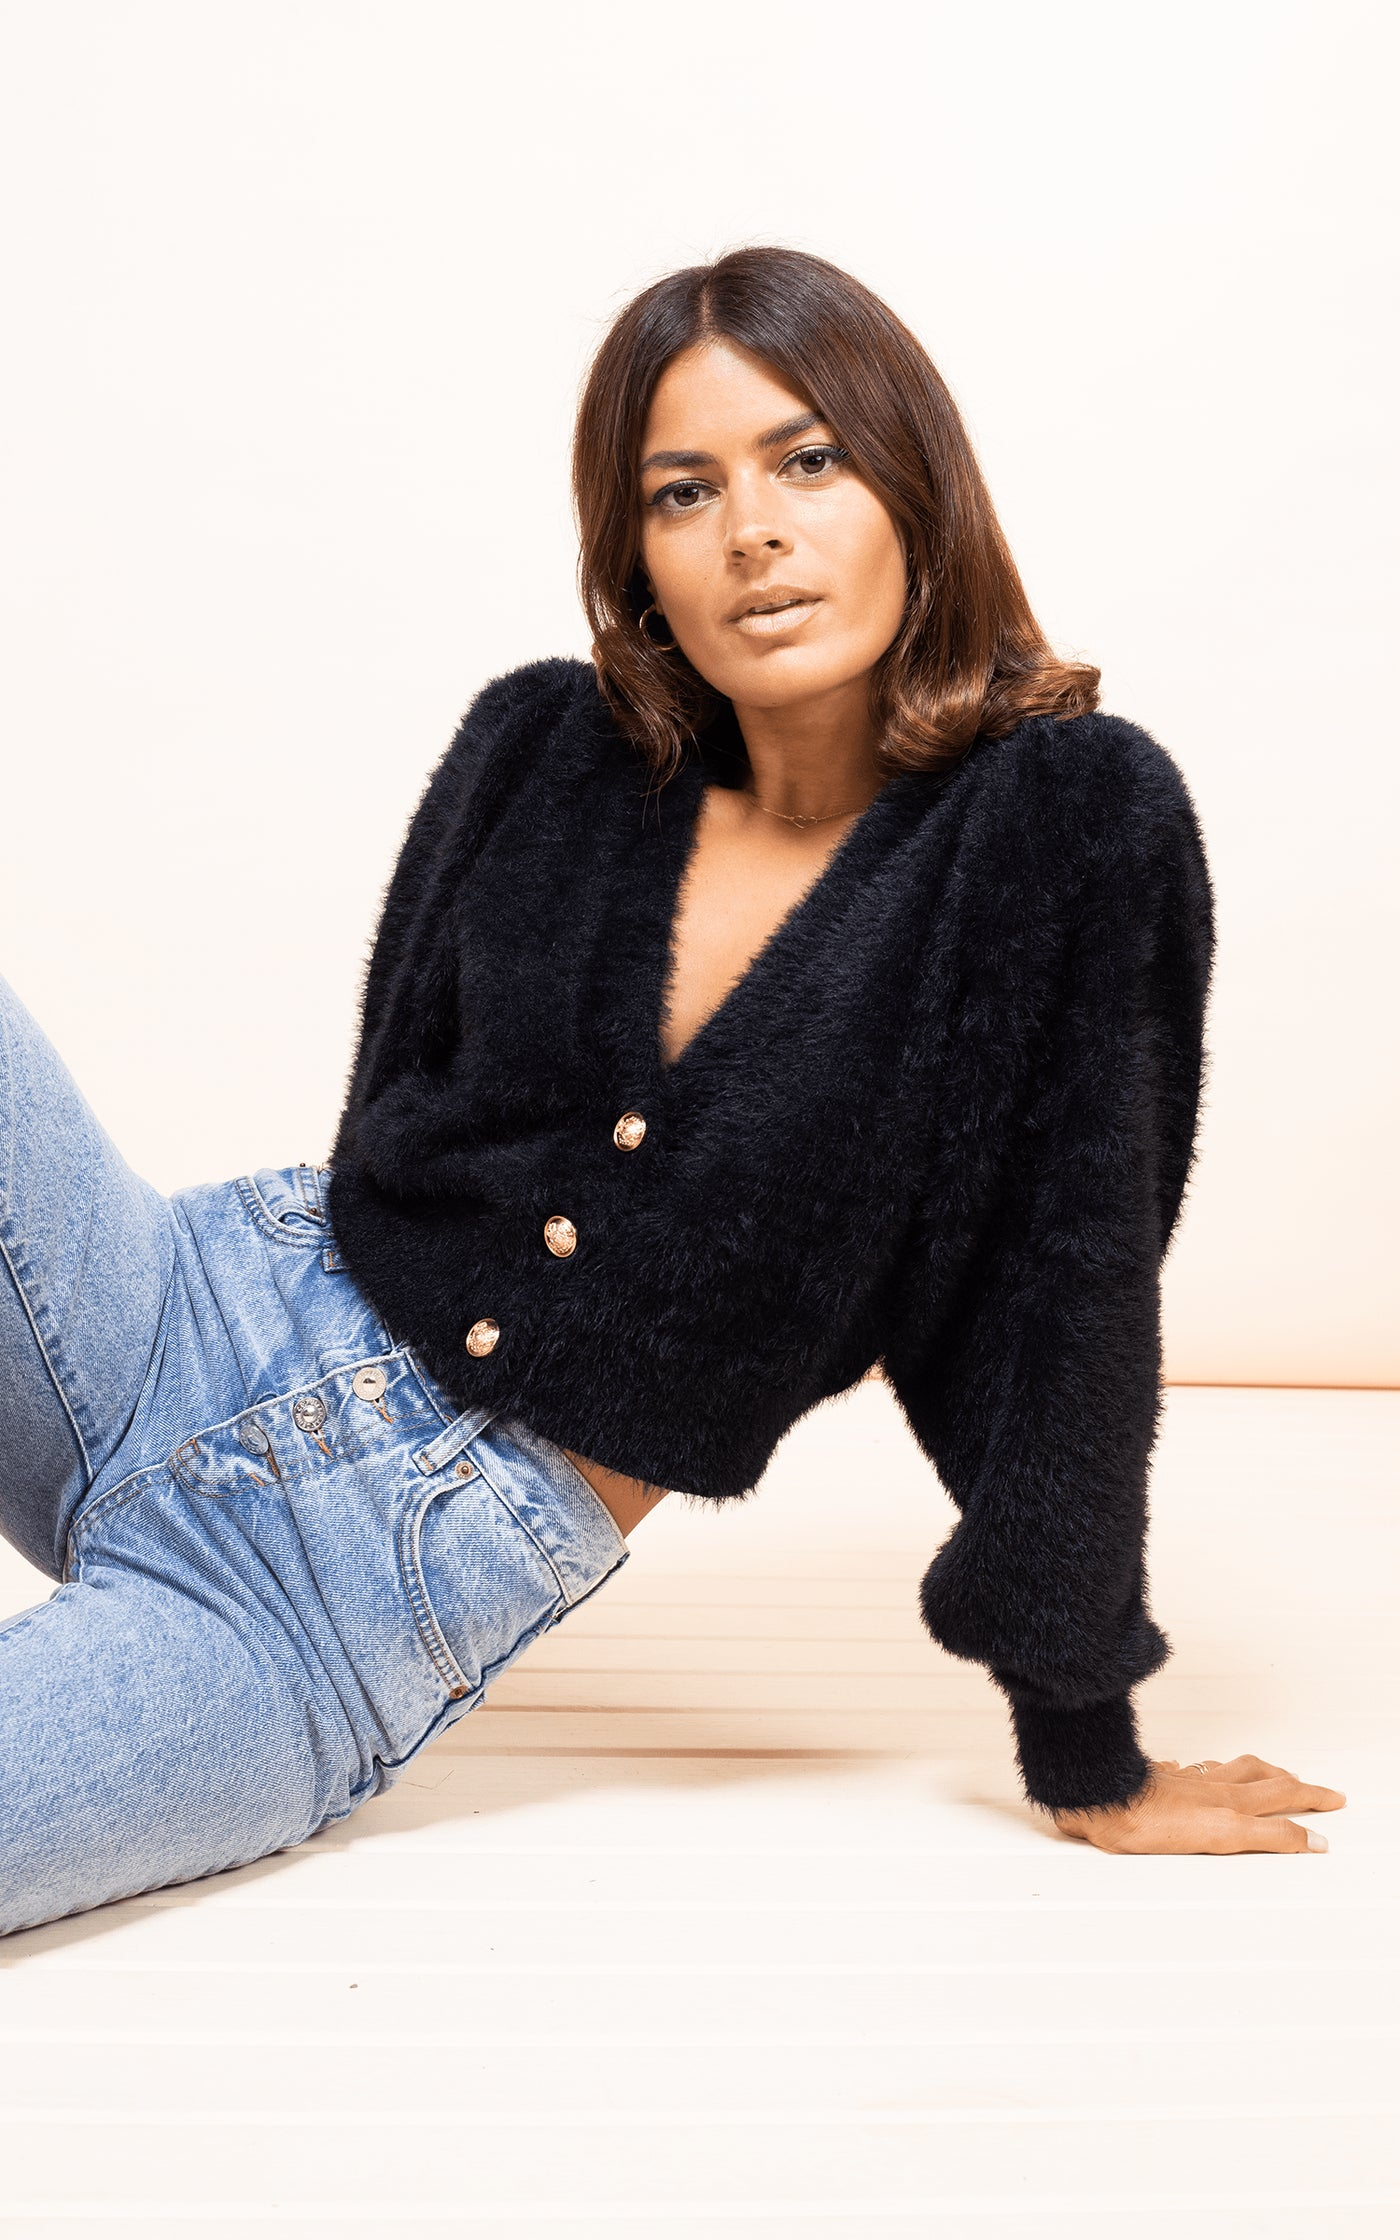 Dancing Leopard model sits on floor wearing Ariana Cardigan in Black with jeans